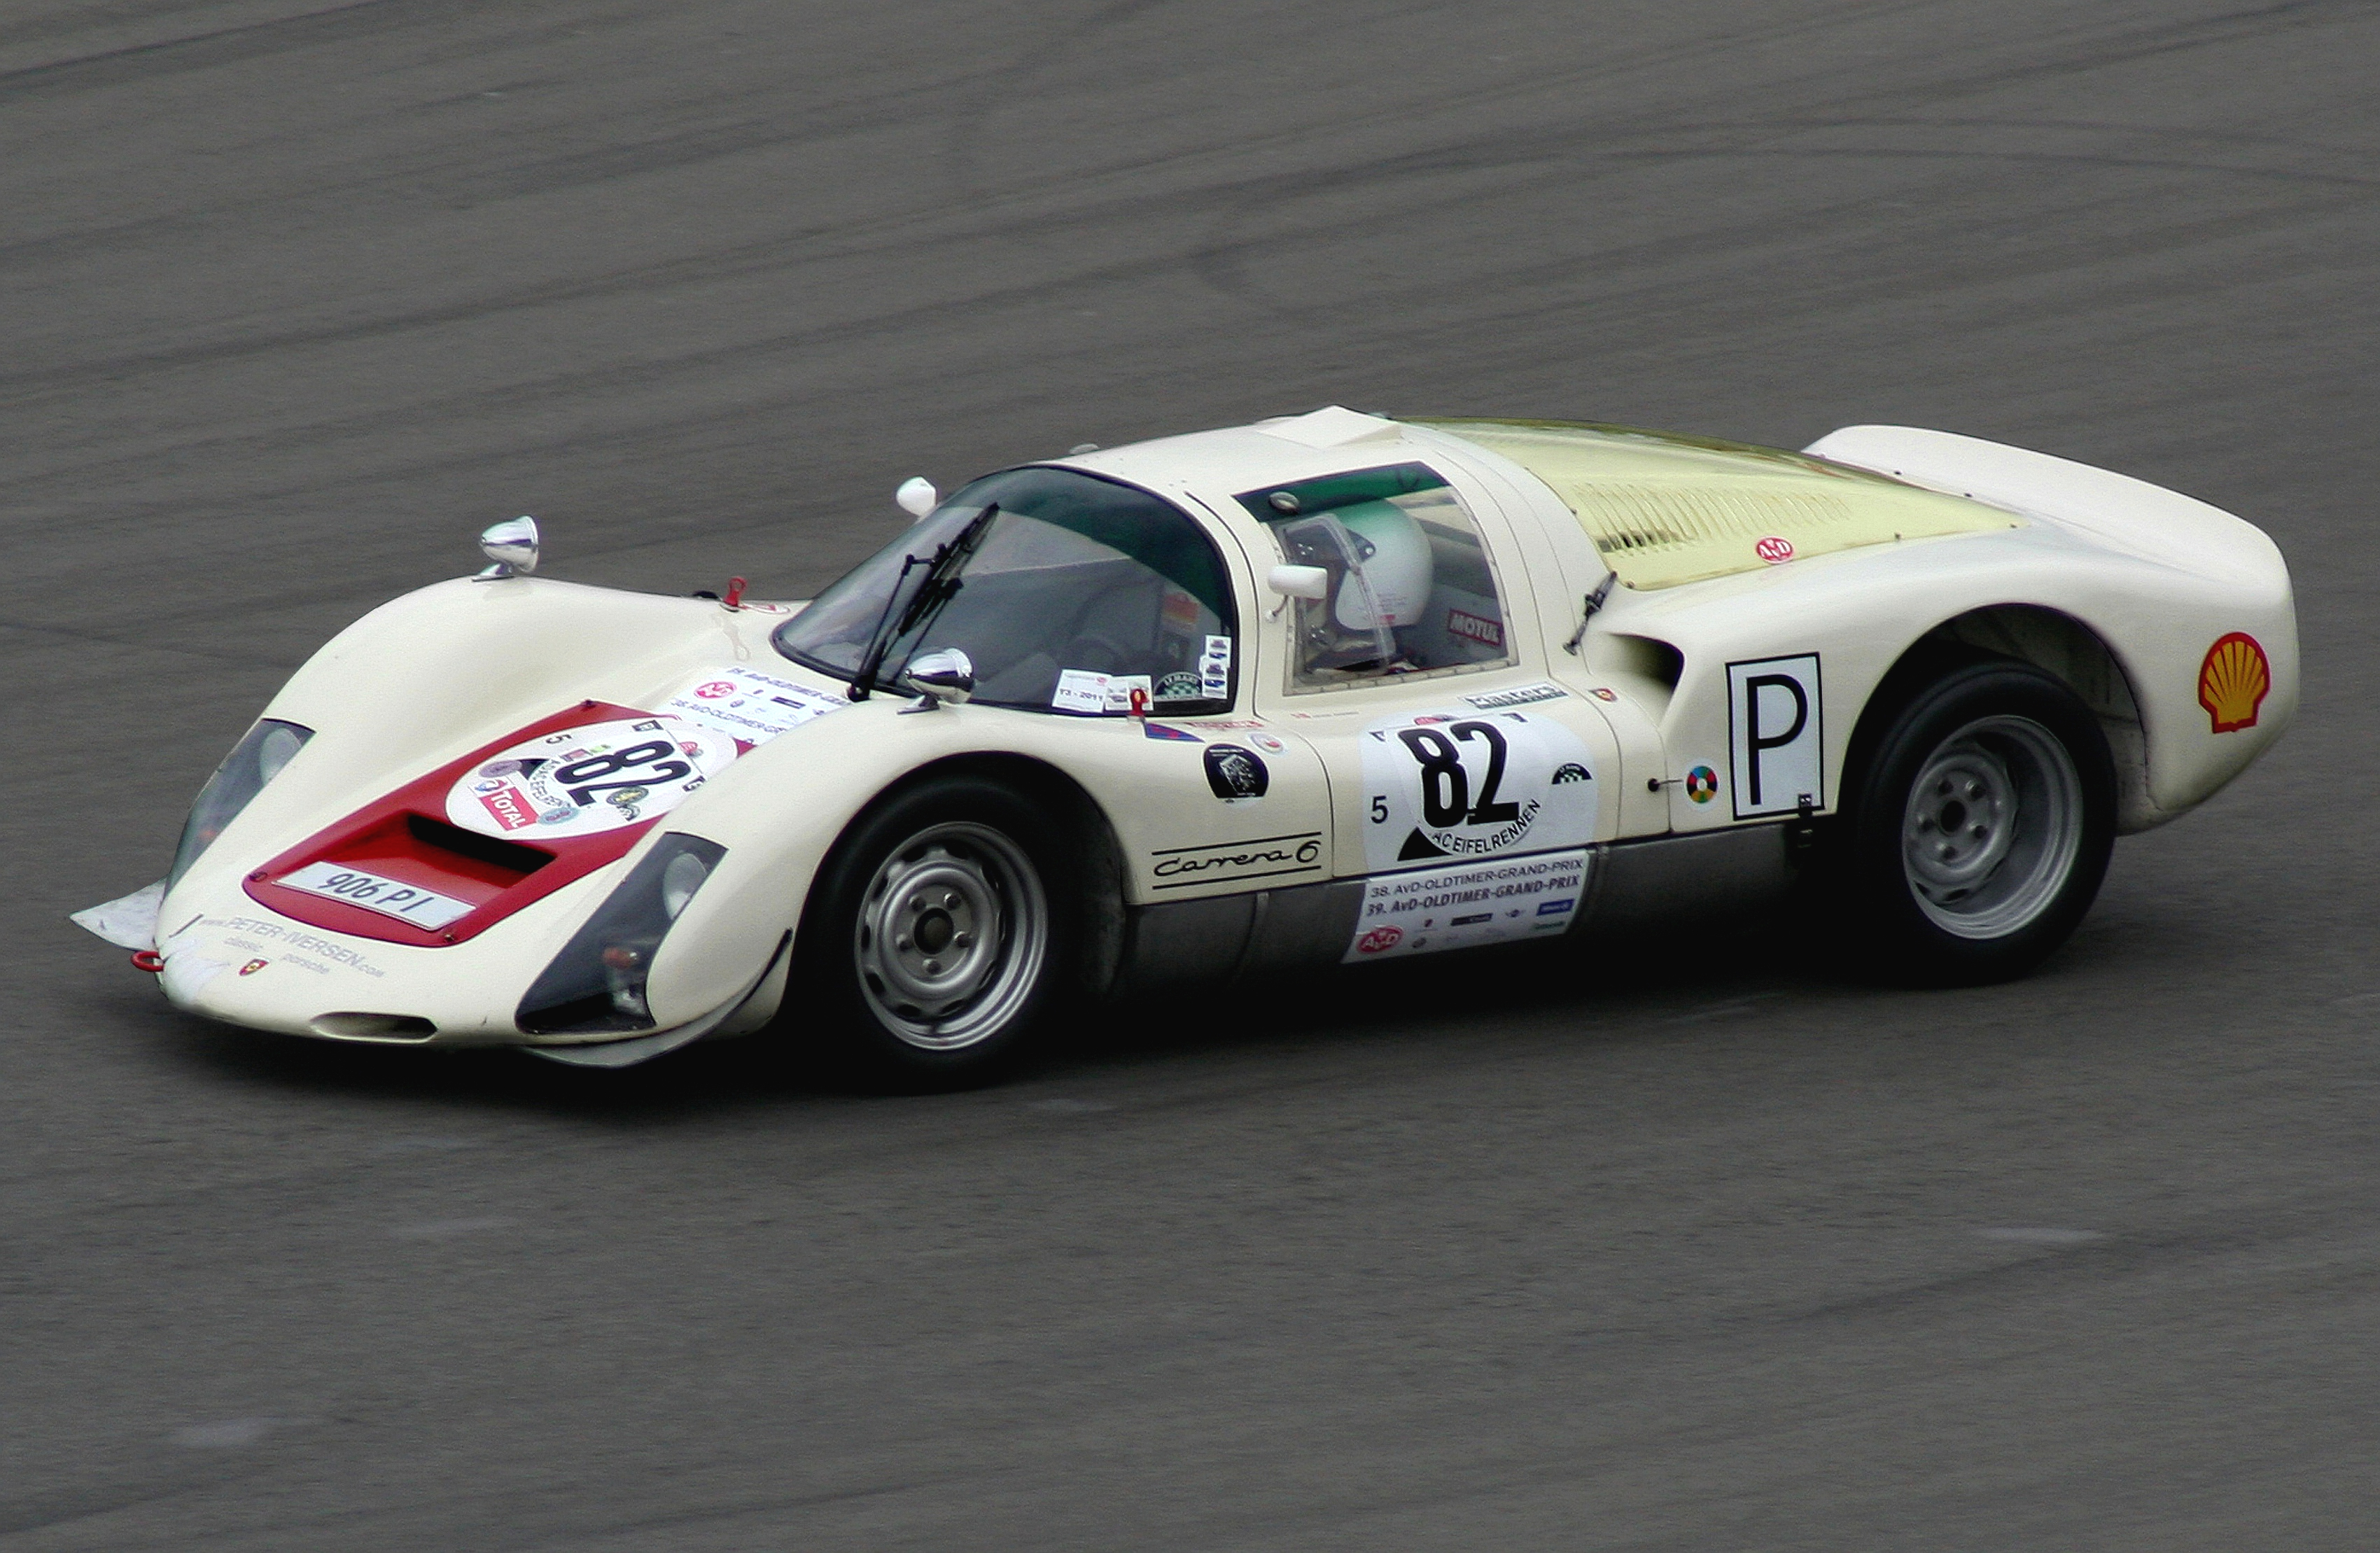 File:Porsche 906, Bj. 1966 (2011-08-13 Sp)